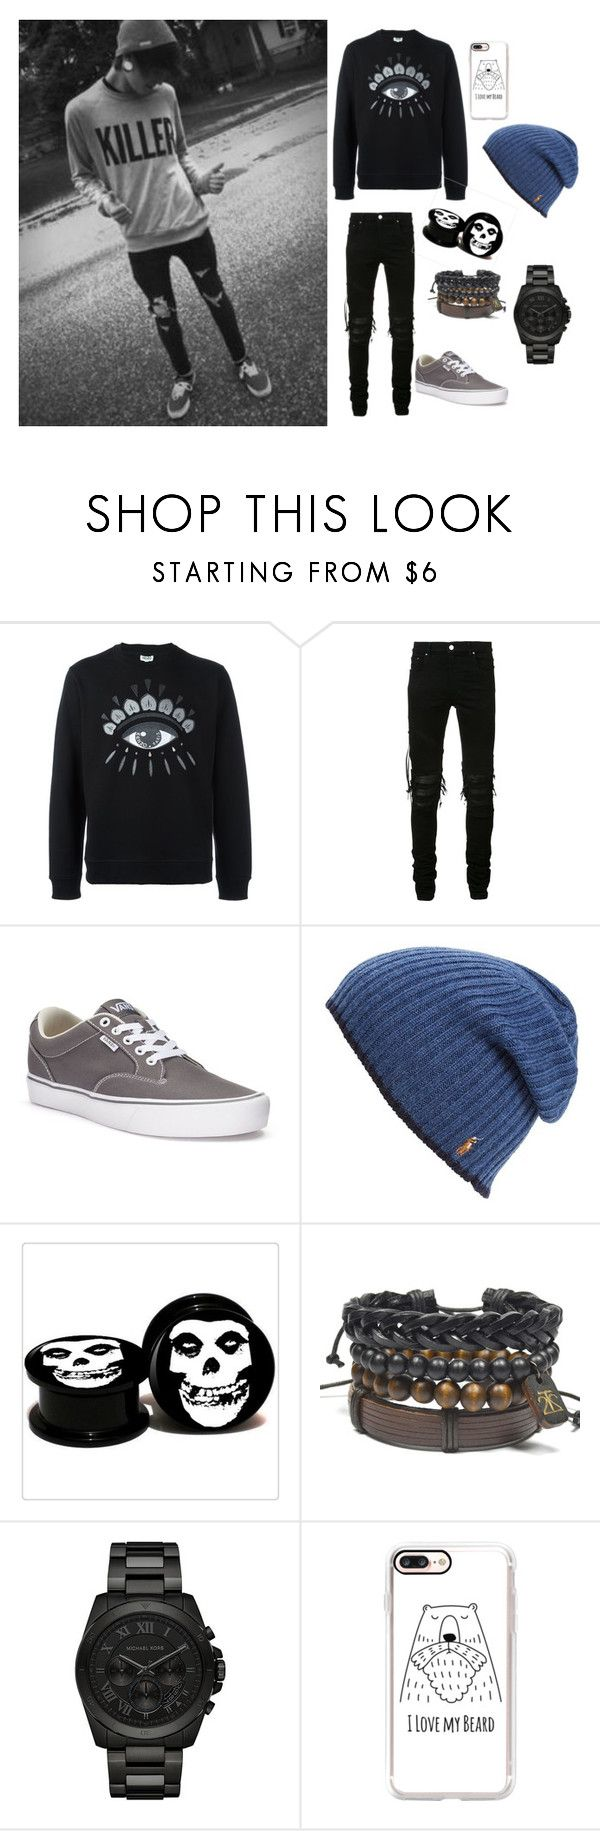 """{Fake people. showing fake love to me }"" by pizza-queen14 ❤ liked on Polyvore featuring Kenzo, AMIRI, Vans, Polo Ralph Lauren, Michael Kors, Casetify, men's fashion and menswear"